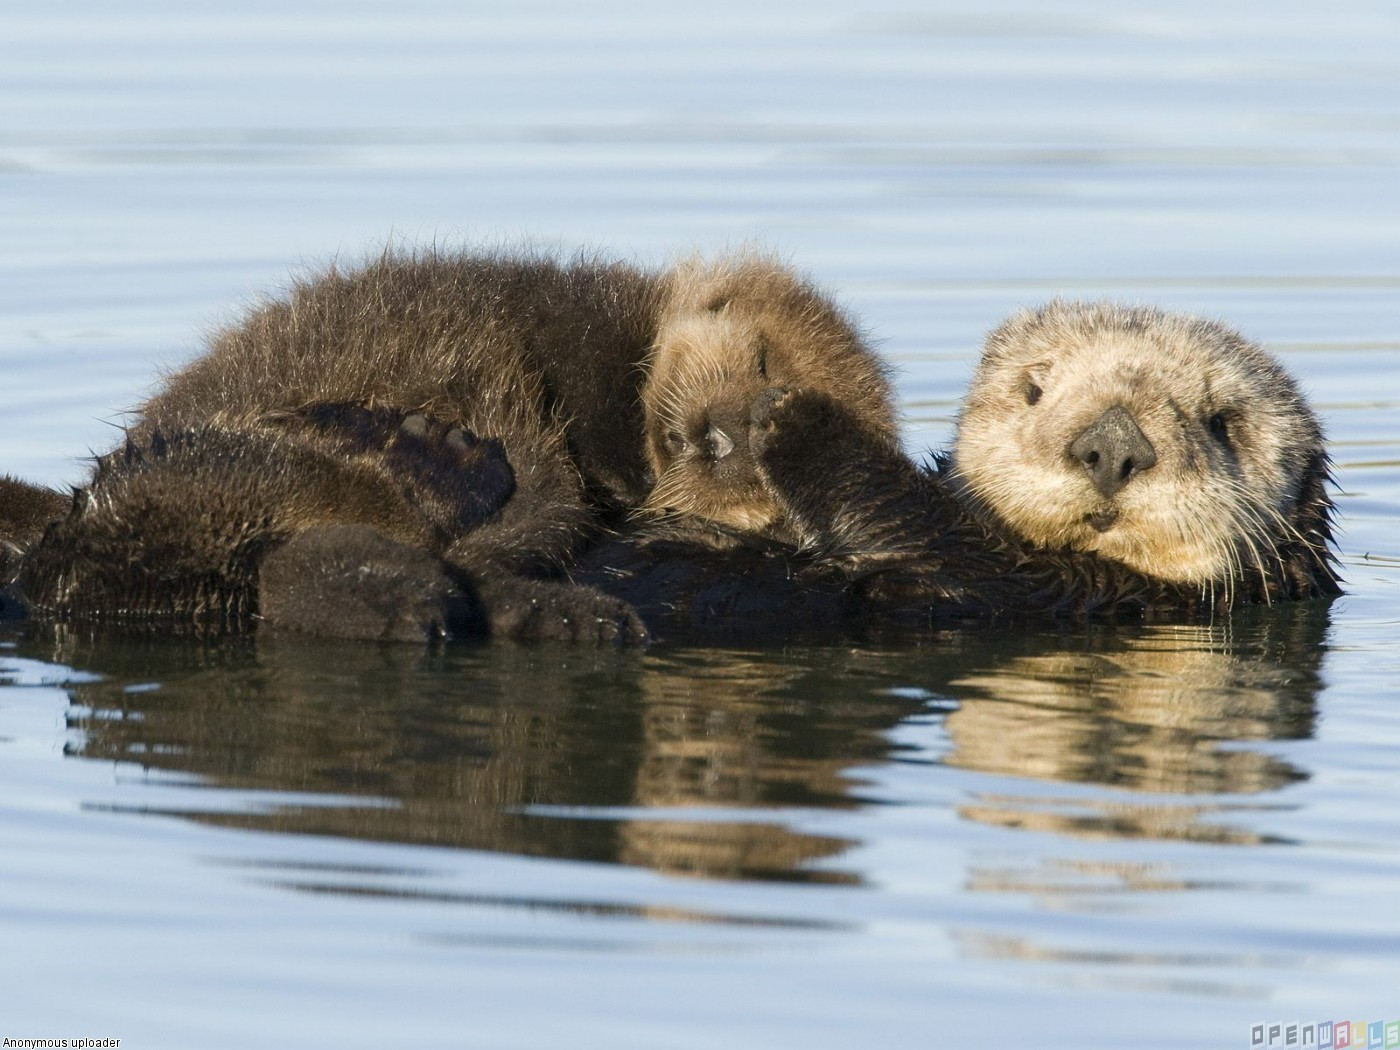 Sea otter mother and pup monterey bay california wallpaper 14028 1400x1050